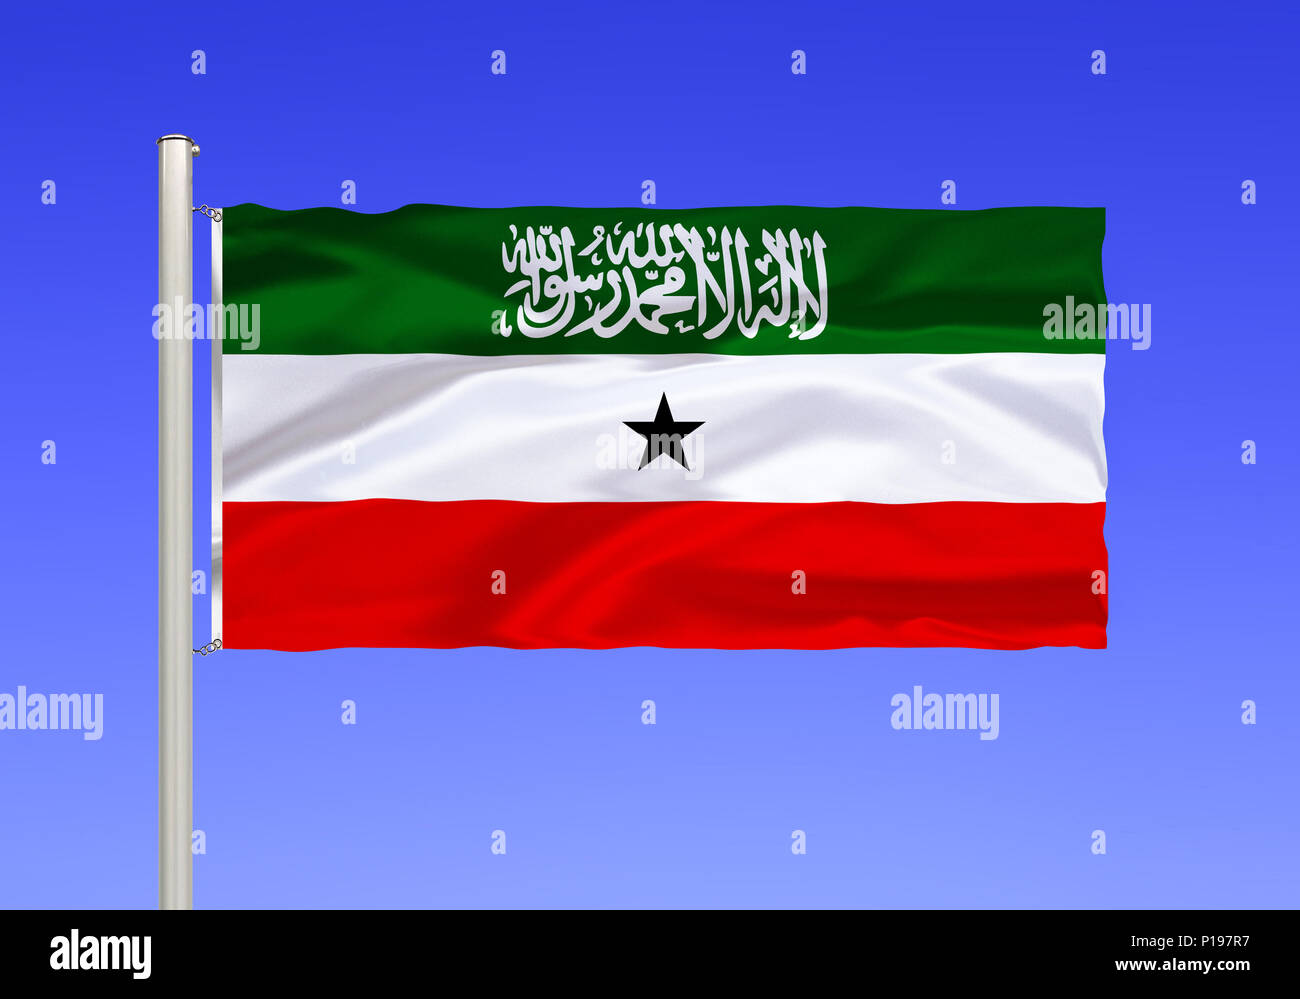 Flag of Somaliland, Africa, East Africa, the Horn of Africa, Flagge von Somaliland, Afrika, Ostafrika, Horn von Afrika - Stock Image